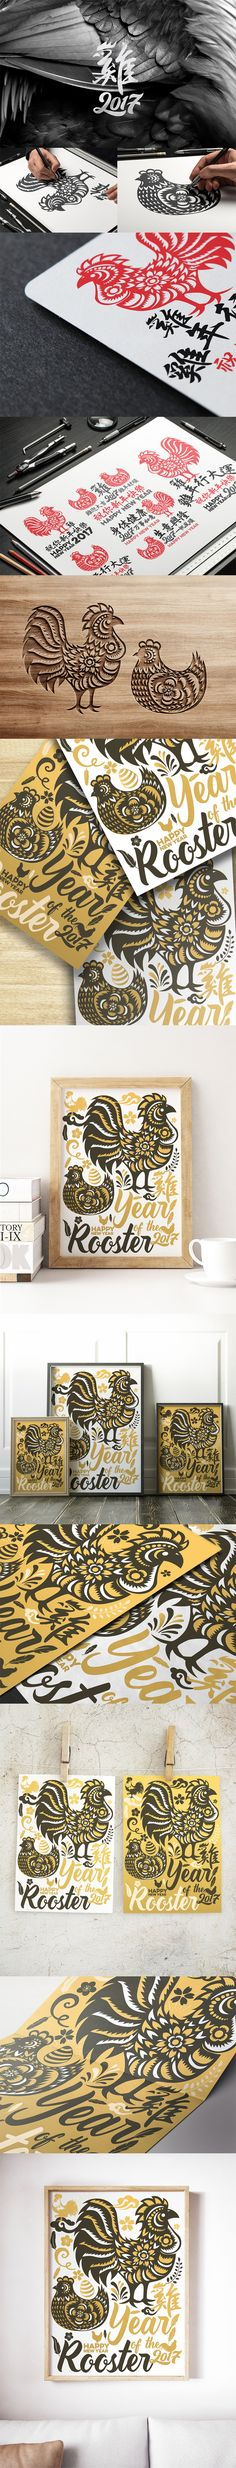 This is a Vector Illustrations of a Chinese new year 2017 Year of the Rooster which include 2 different design poster / card. Paper cutting is a traditional art done by Chinese in China. This Chinese new year 2017 Year of the rooster can be easily used in Adobe photoshop and illustrator, Fully layered, Smart Objects and it VECTOR !  #Rooster #chicken #Chinese #Chinesenewyear #newyear2017 #2017 #roosteryear #china #Chineserooster #papercut #gongxifacai